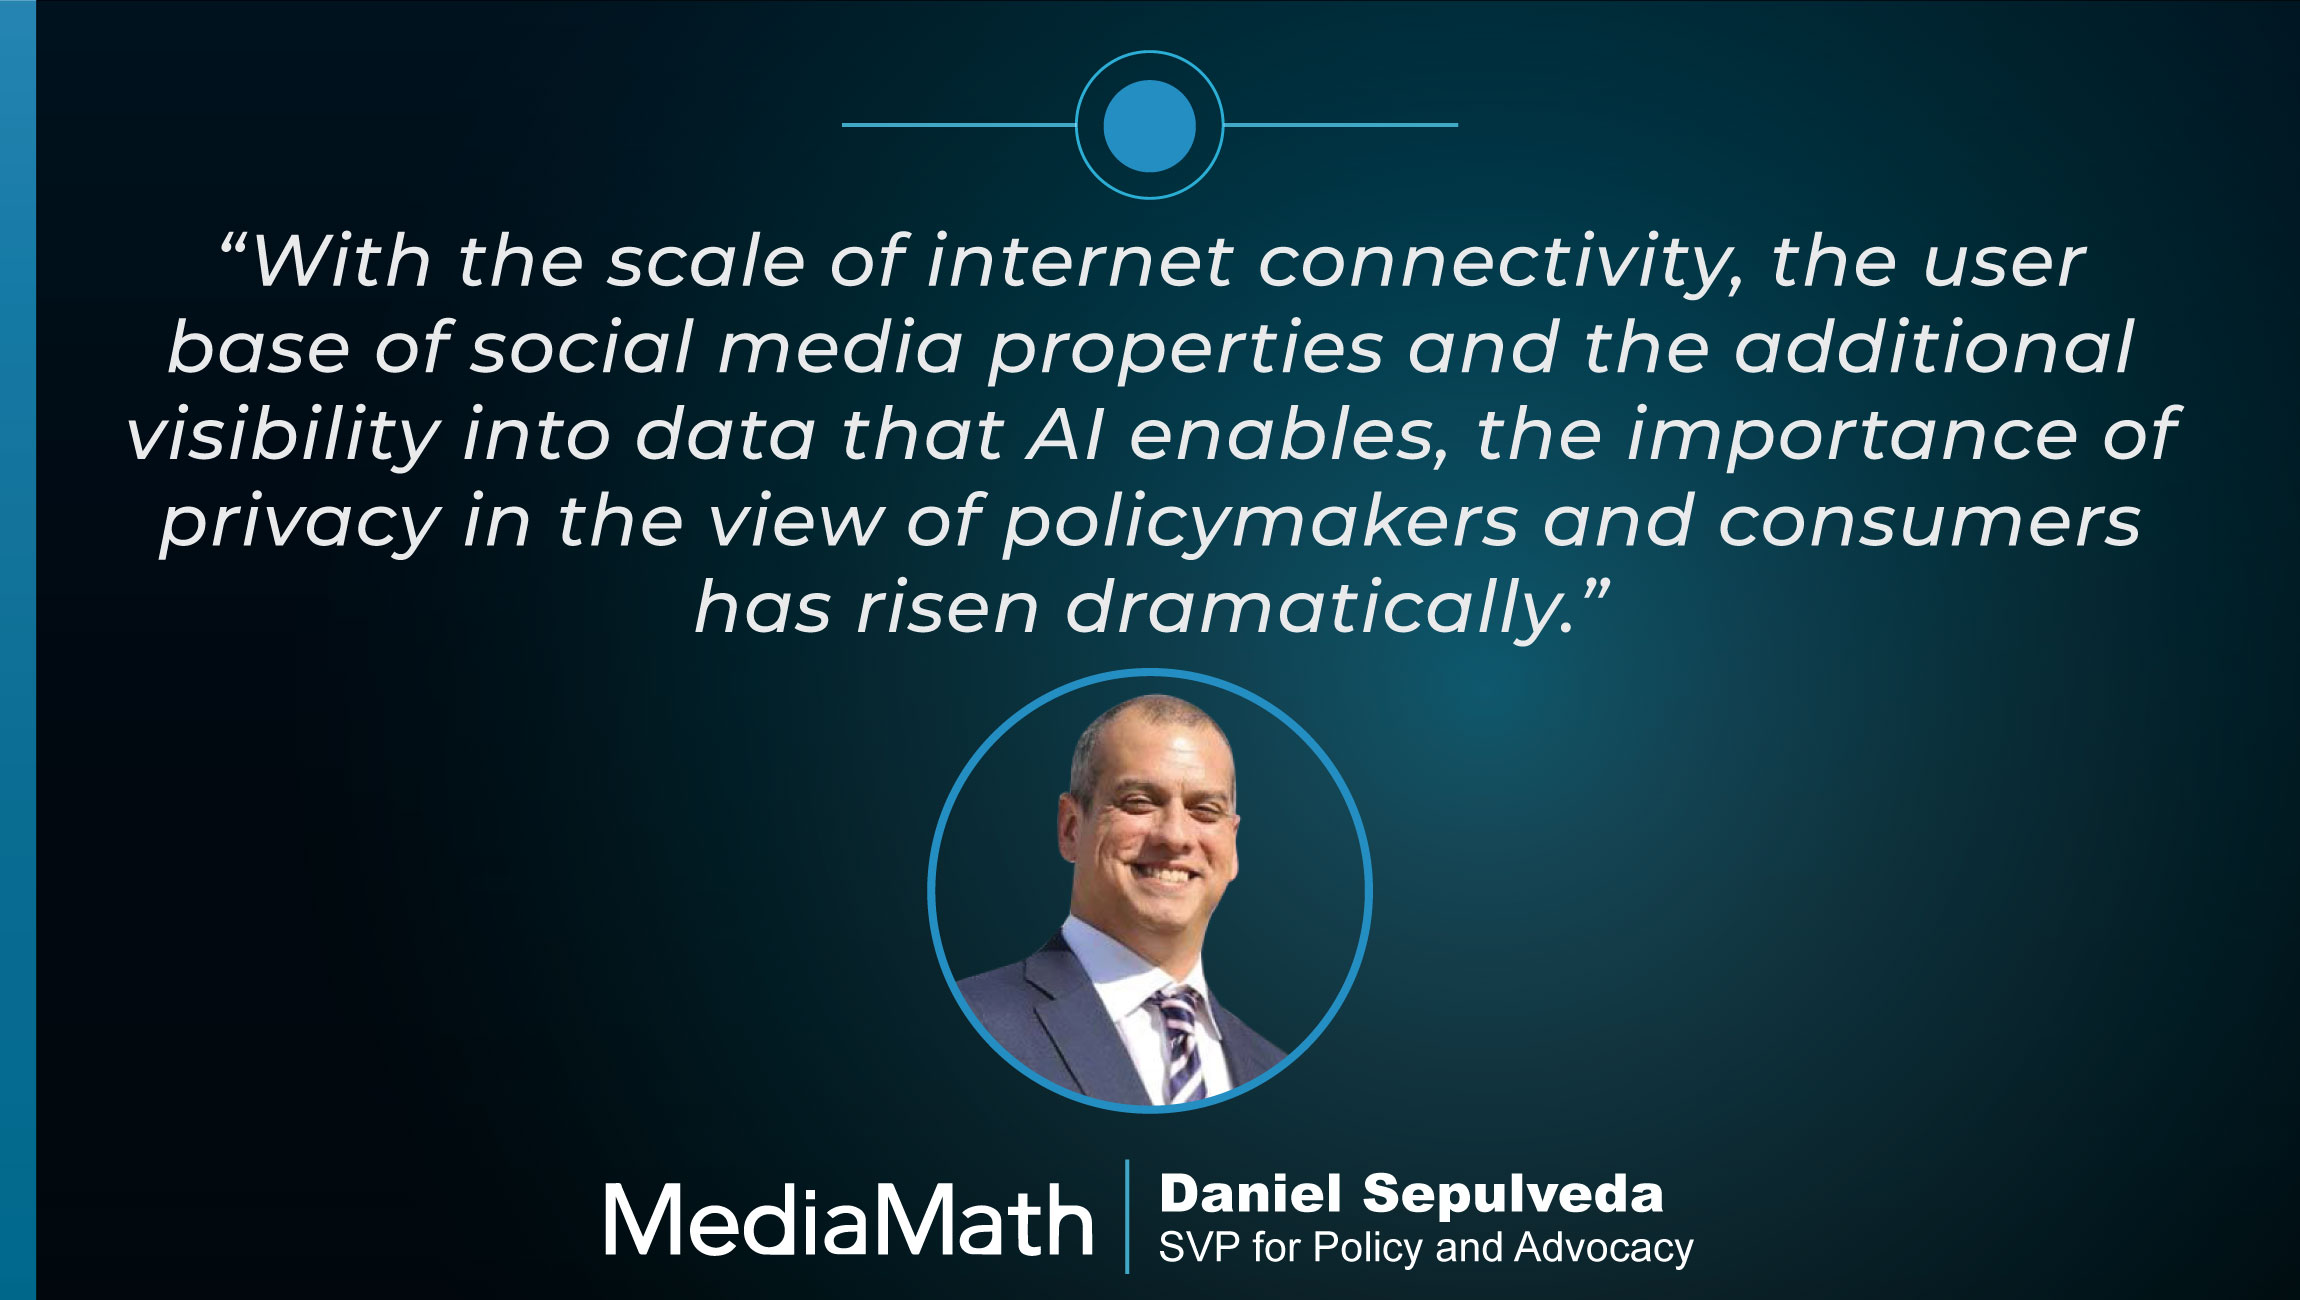 TechBytes with Daniel Sepulveda, SVP for Policy and Advocacy at MediaMath